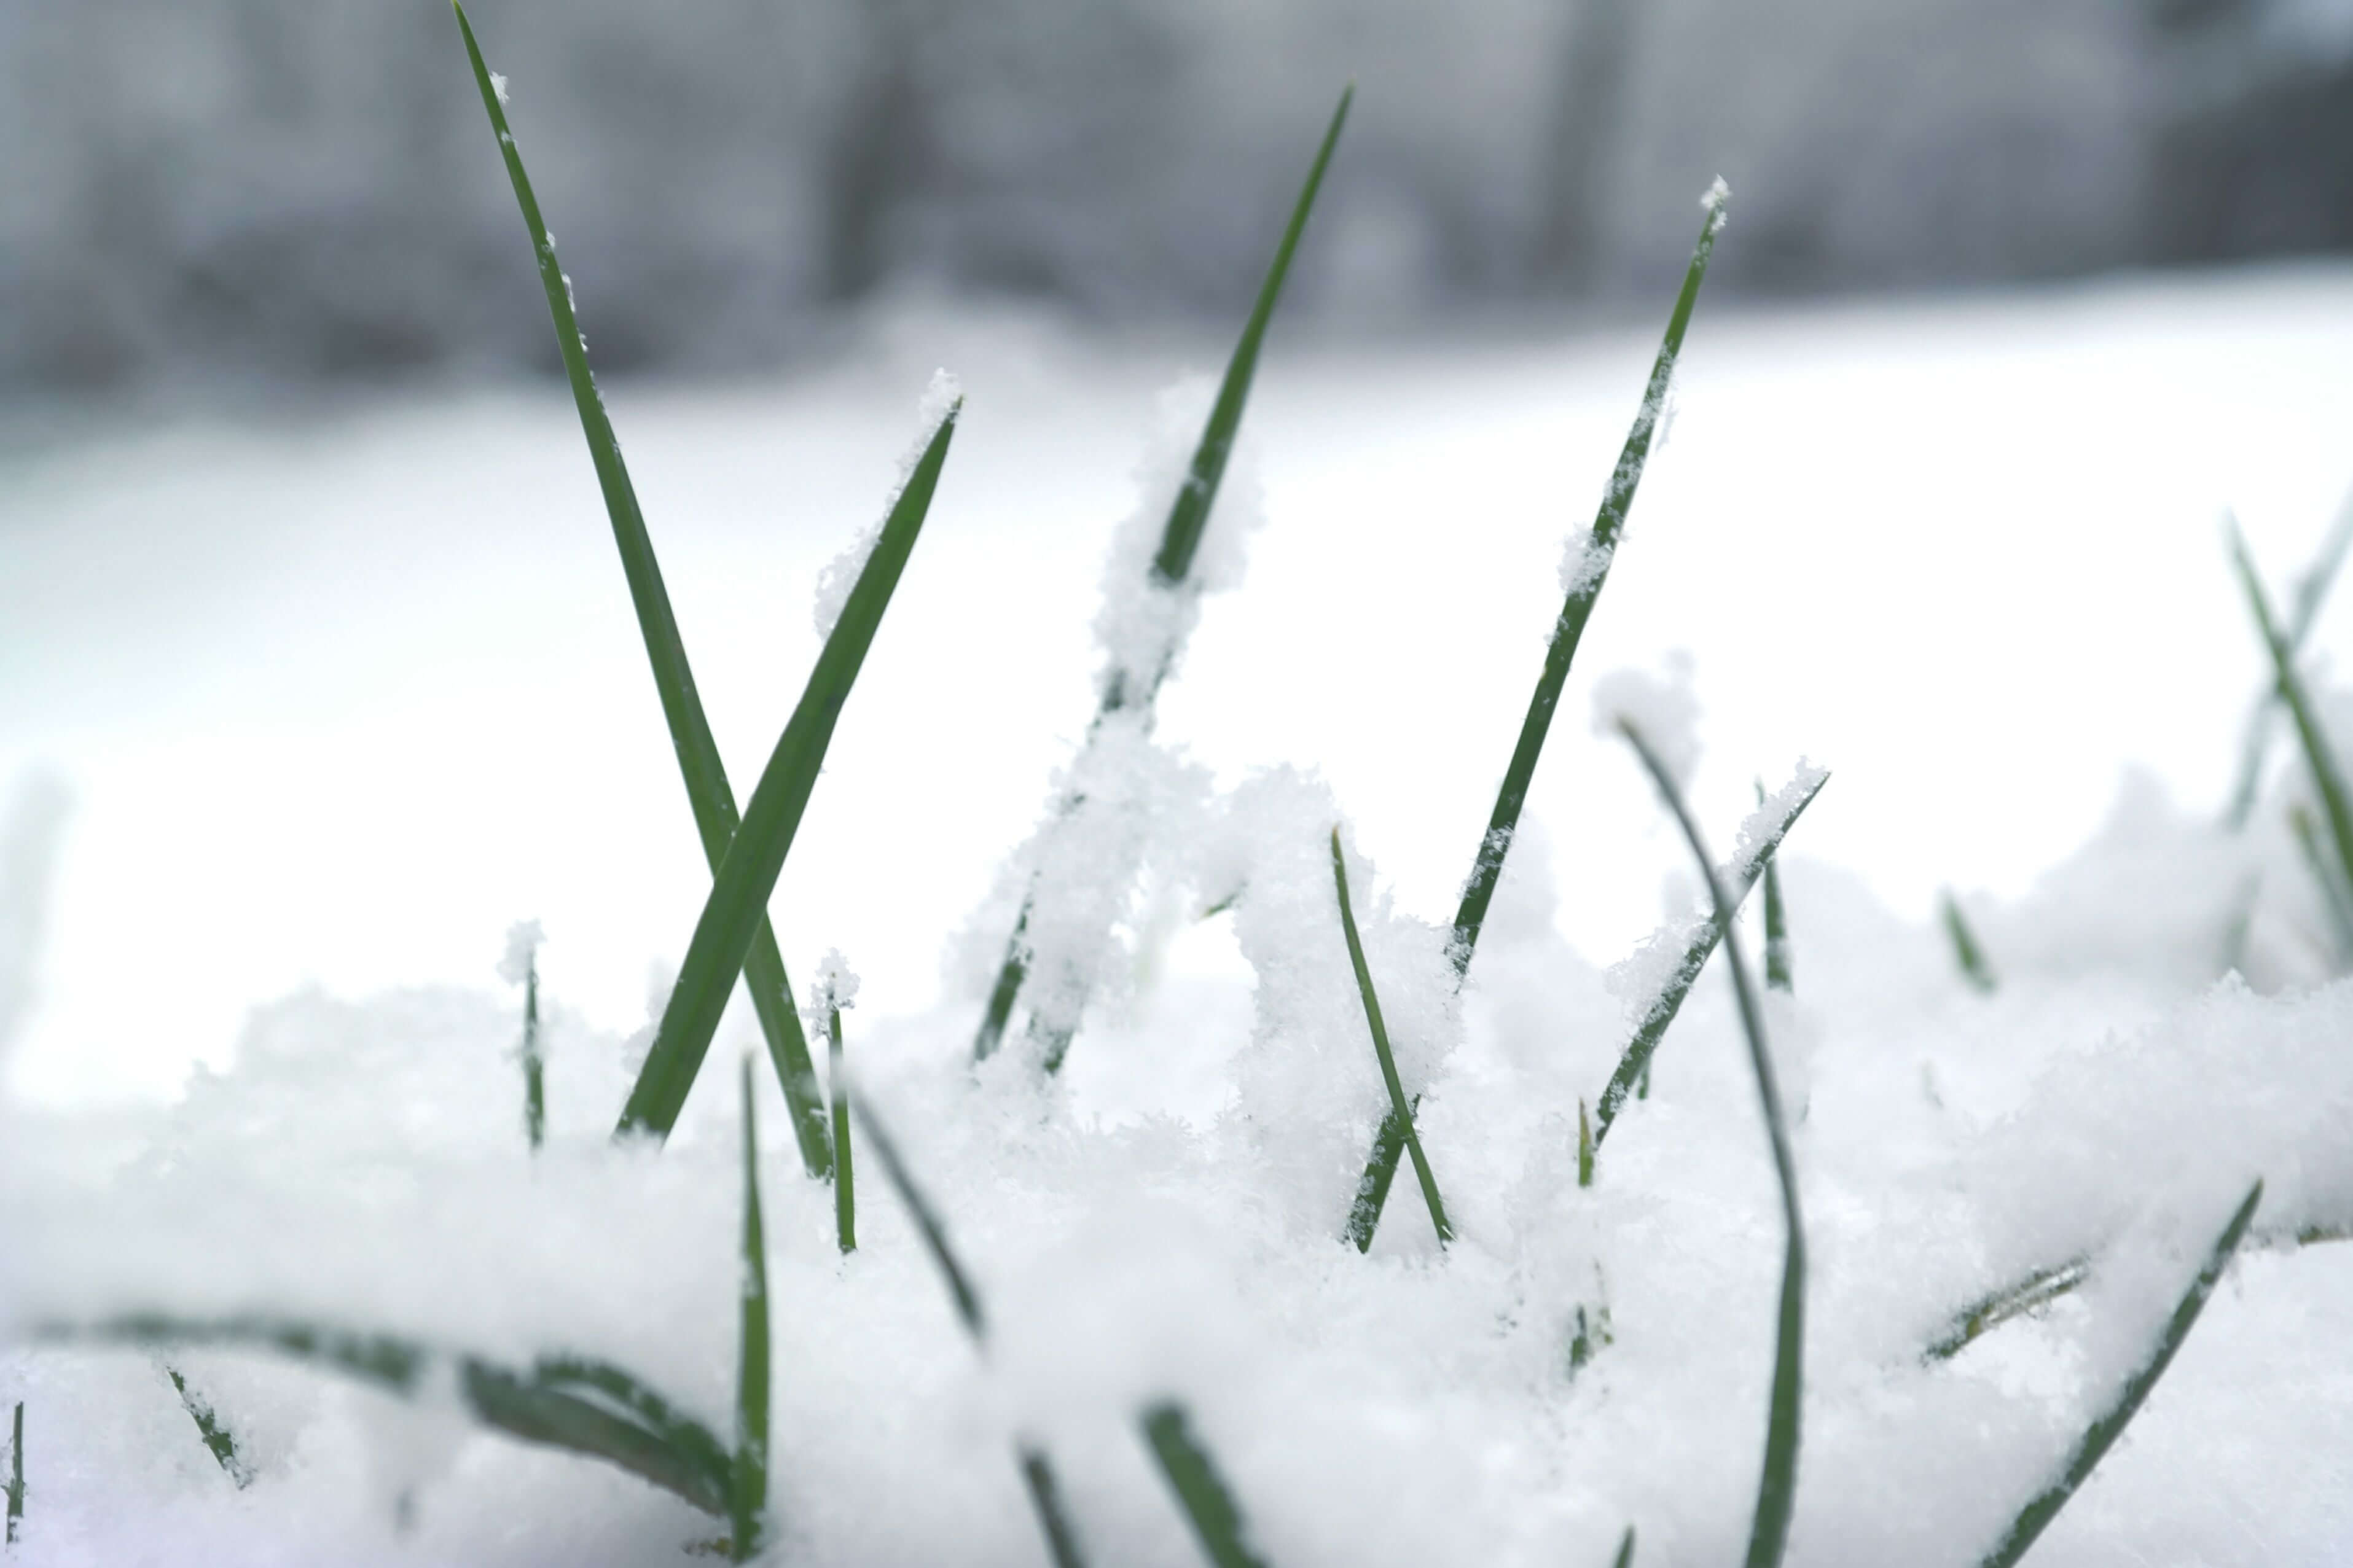 How to best serve your lawn during the colder season